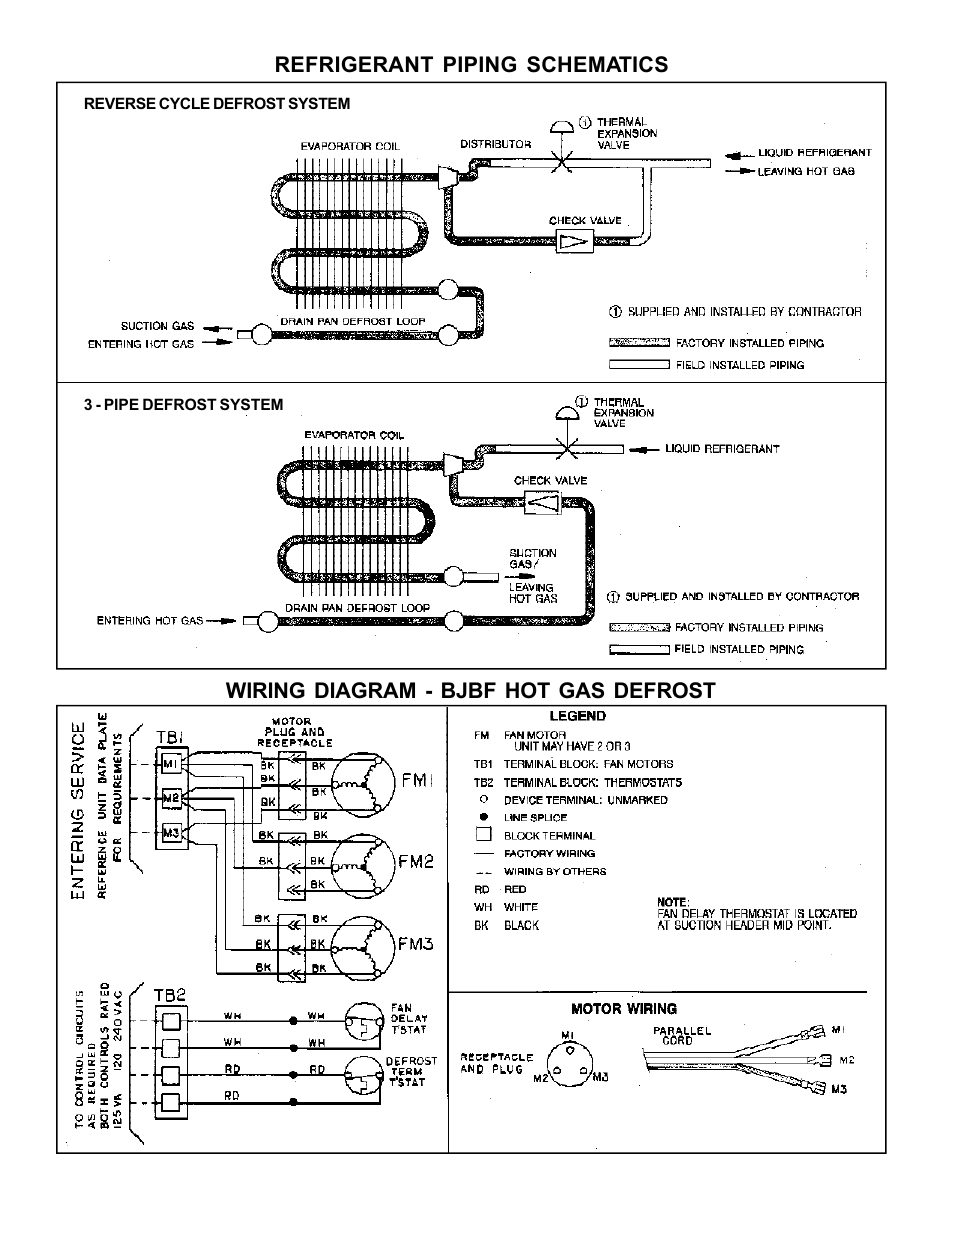 Refrigerant piping schematics, Wiring diagram, Hot gas defrost ... on